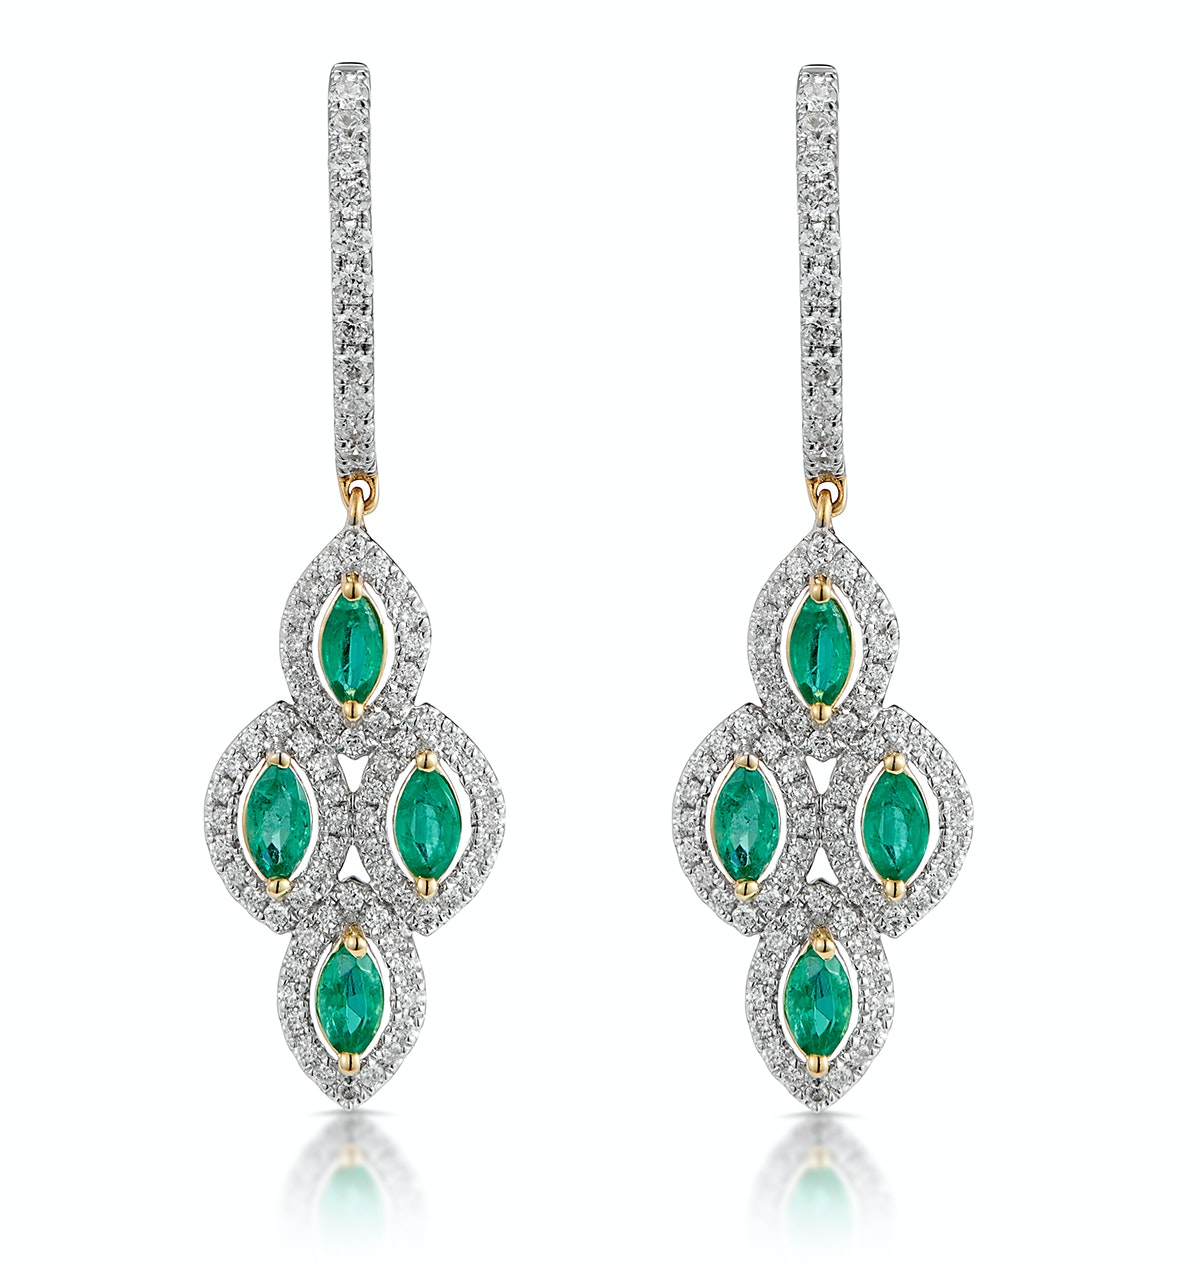 1.10ct Emerald Asteria Collection Diamond Drop Earrings in 18K Gold